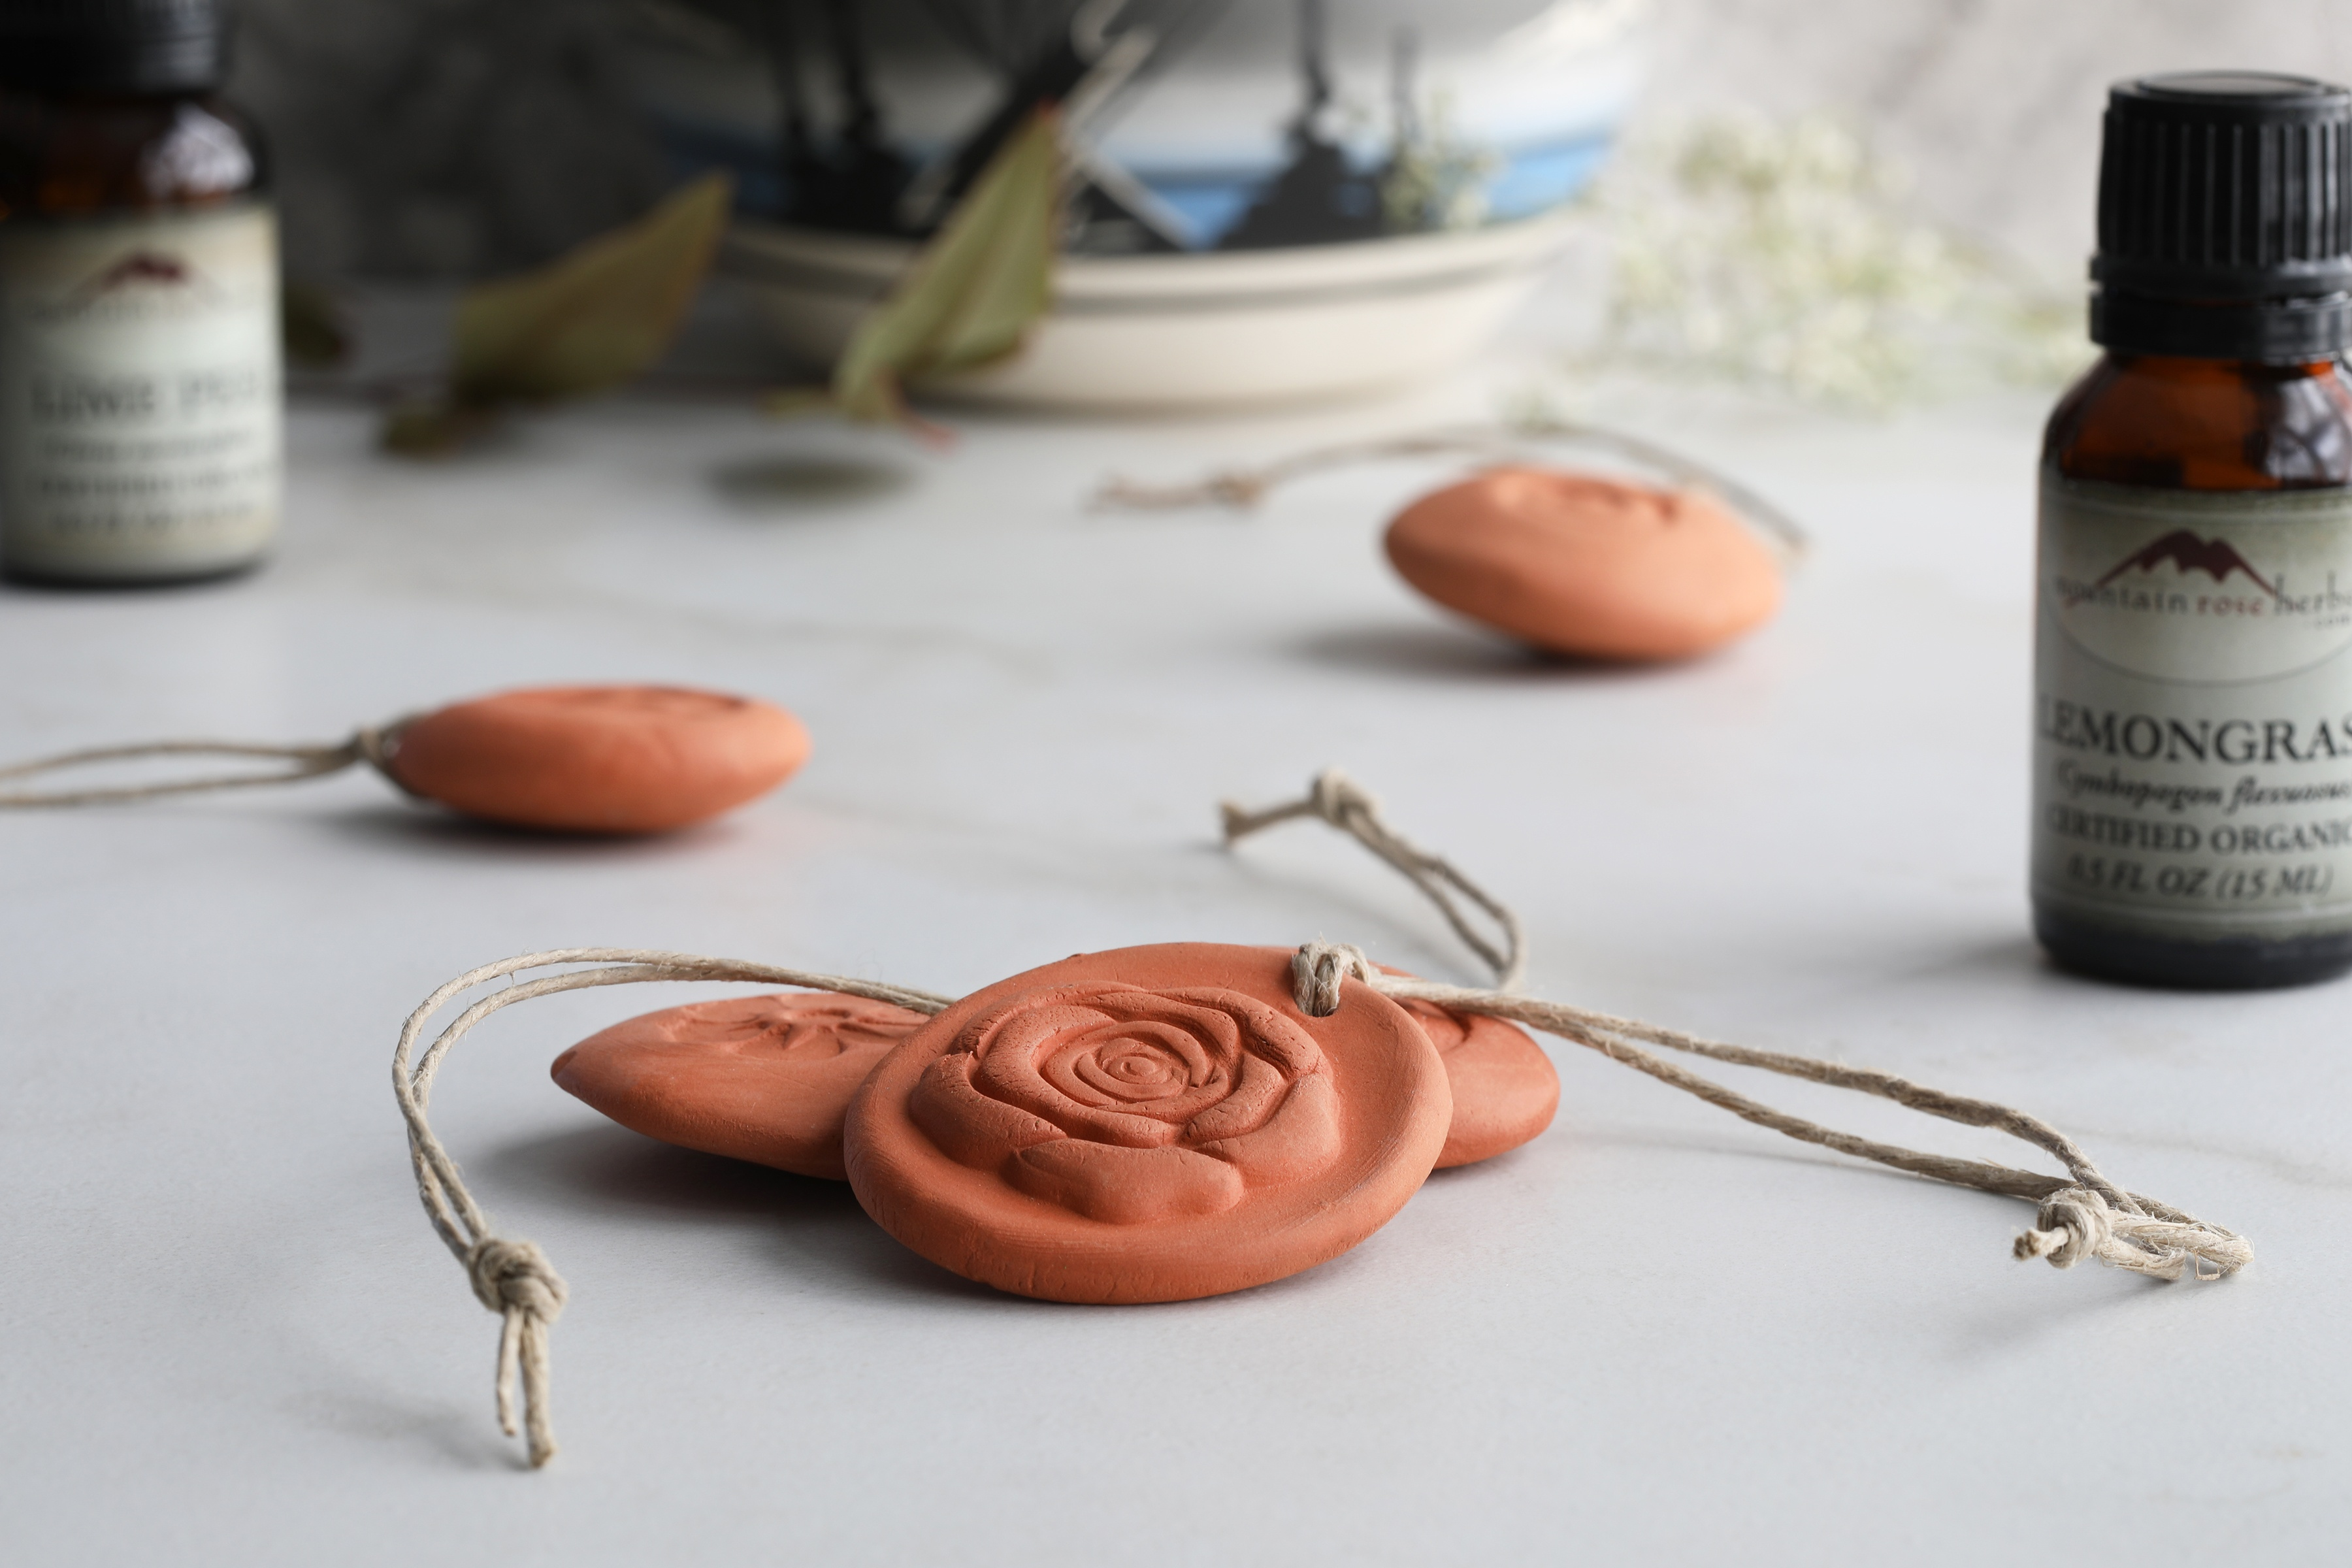 Small terra cotta hanging diffusers laying on surface with lemongrass essential oil